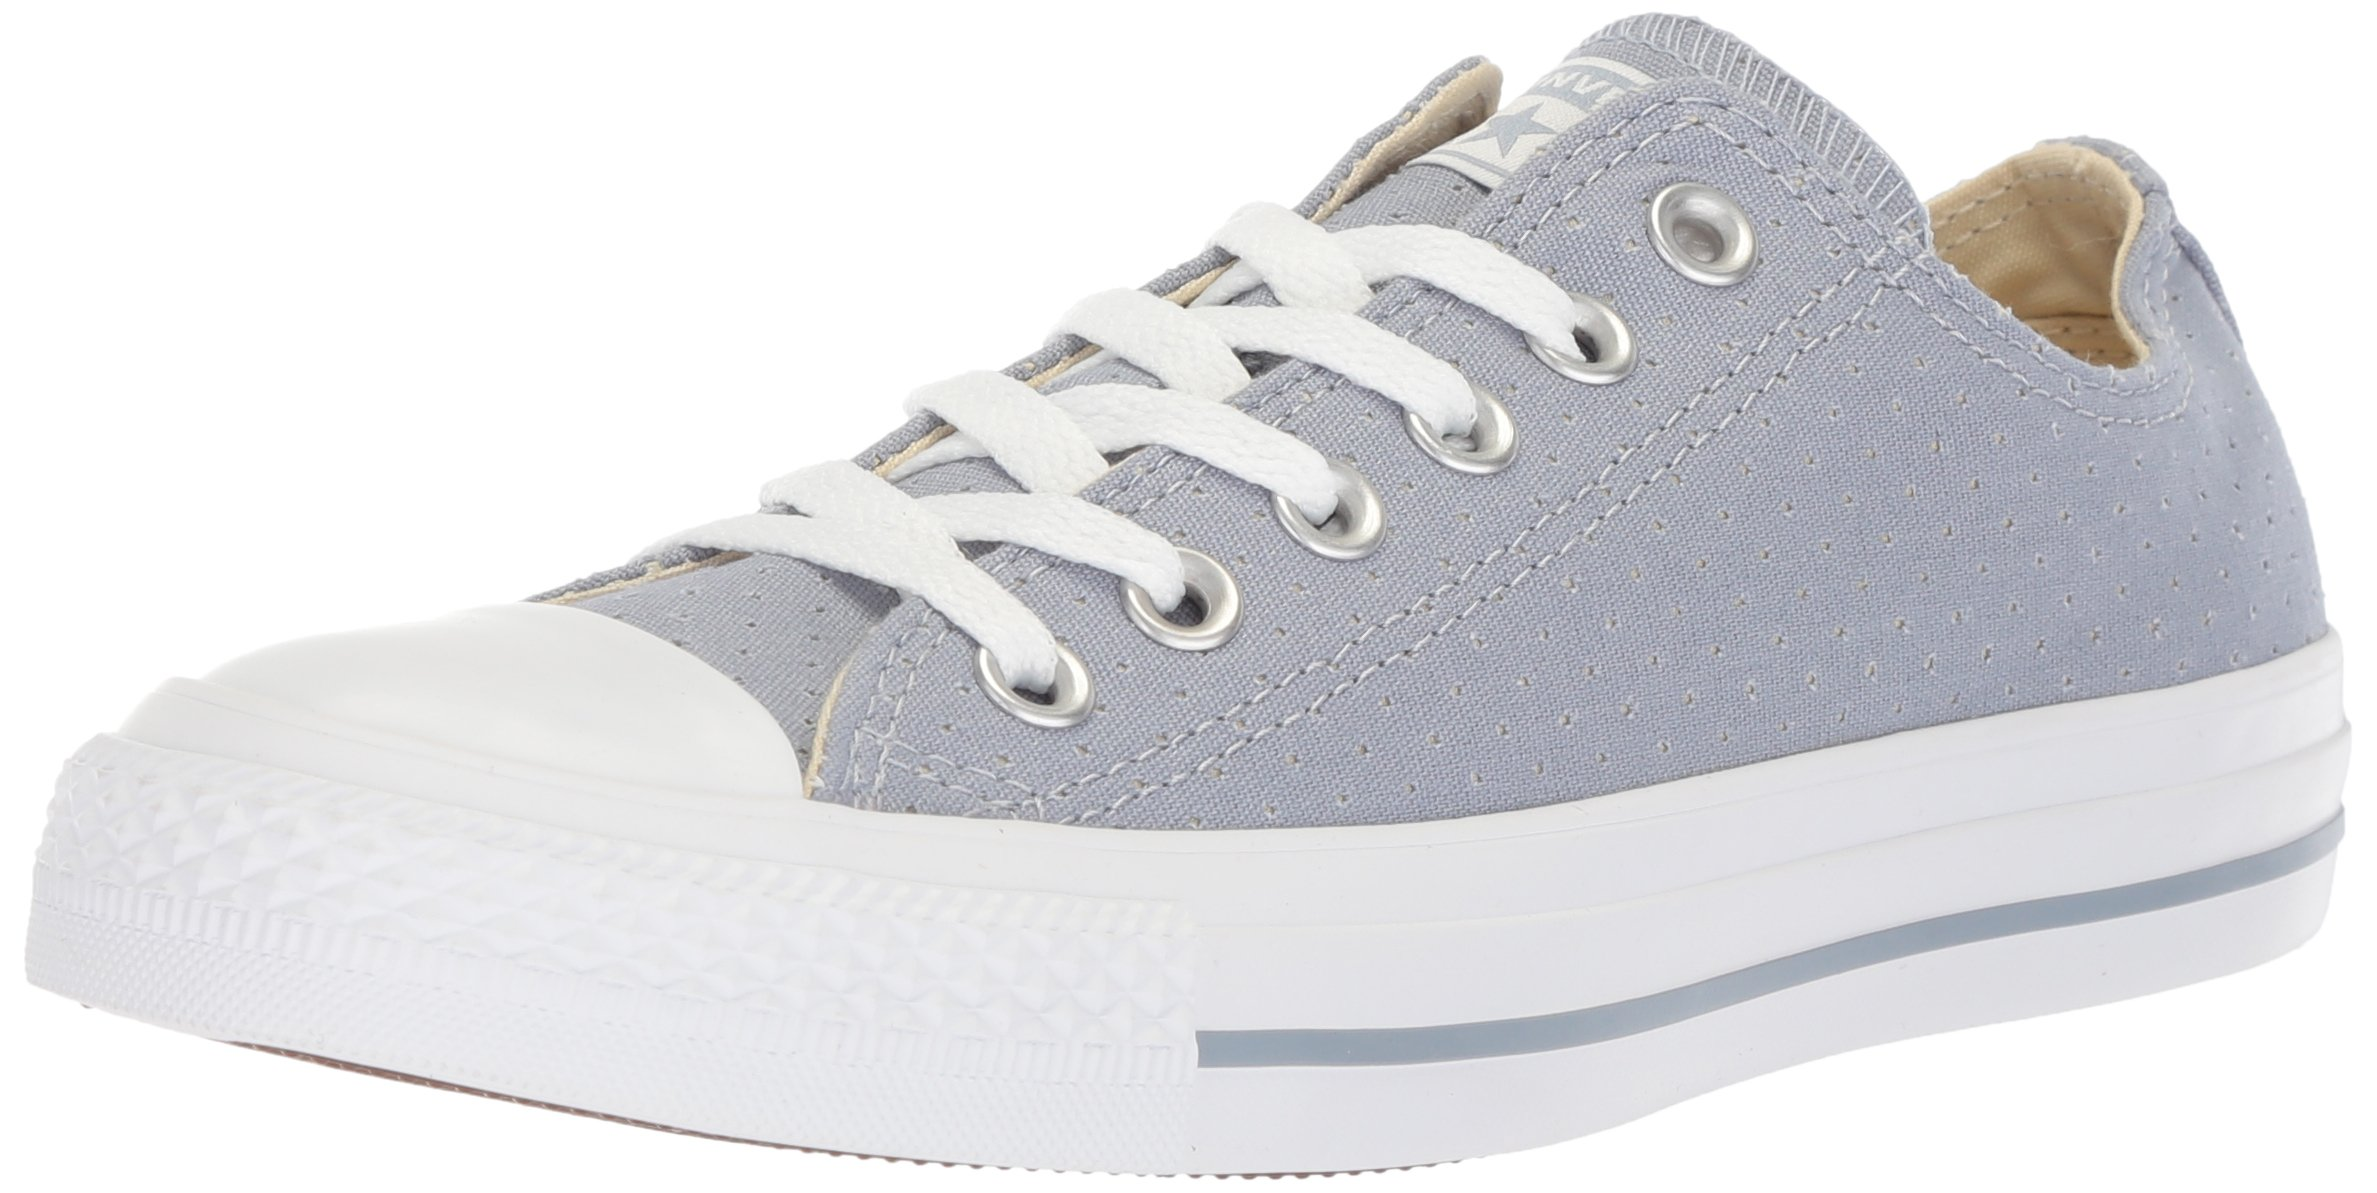 Converse Women's Chuck Taylor All Star Perforated Canvas Low Top Sneaker, Glacier Grey/White/White, 8.5 M US